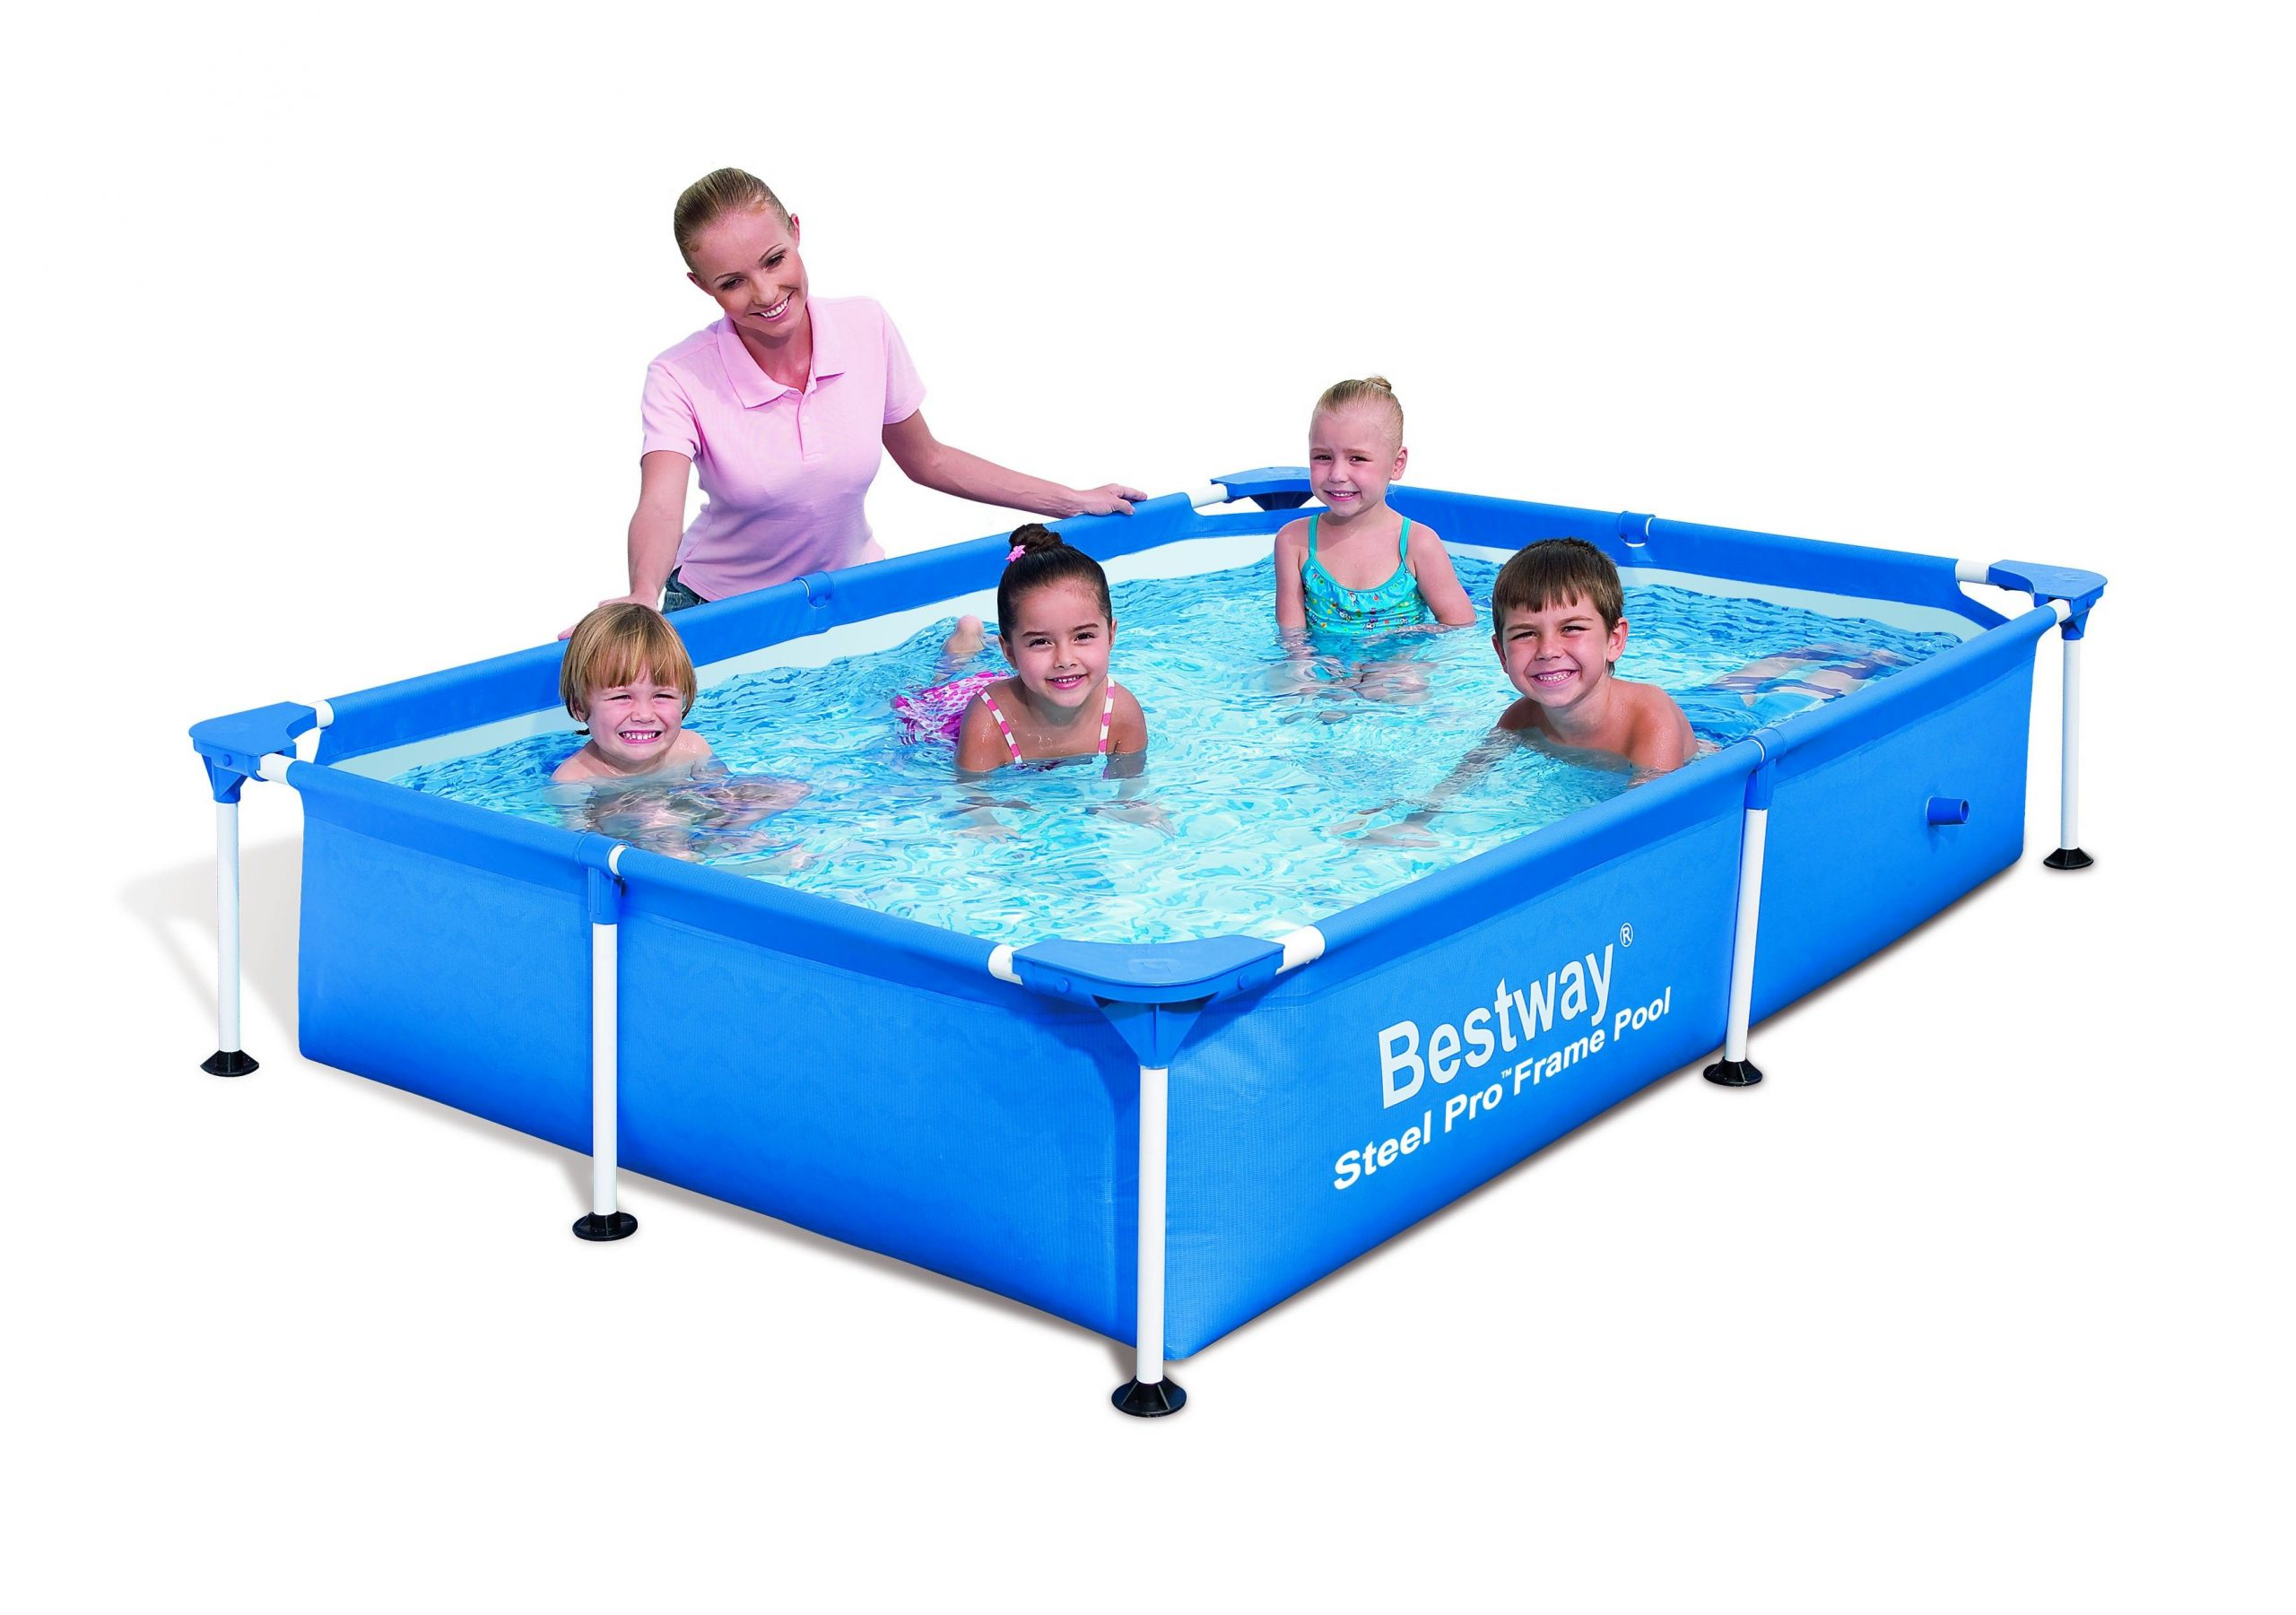 Piscine Rectangulaire Splash Frame Pools Bleue Au Meilleur ... serapportantà Auchan Piscine Tubulaire